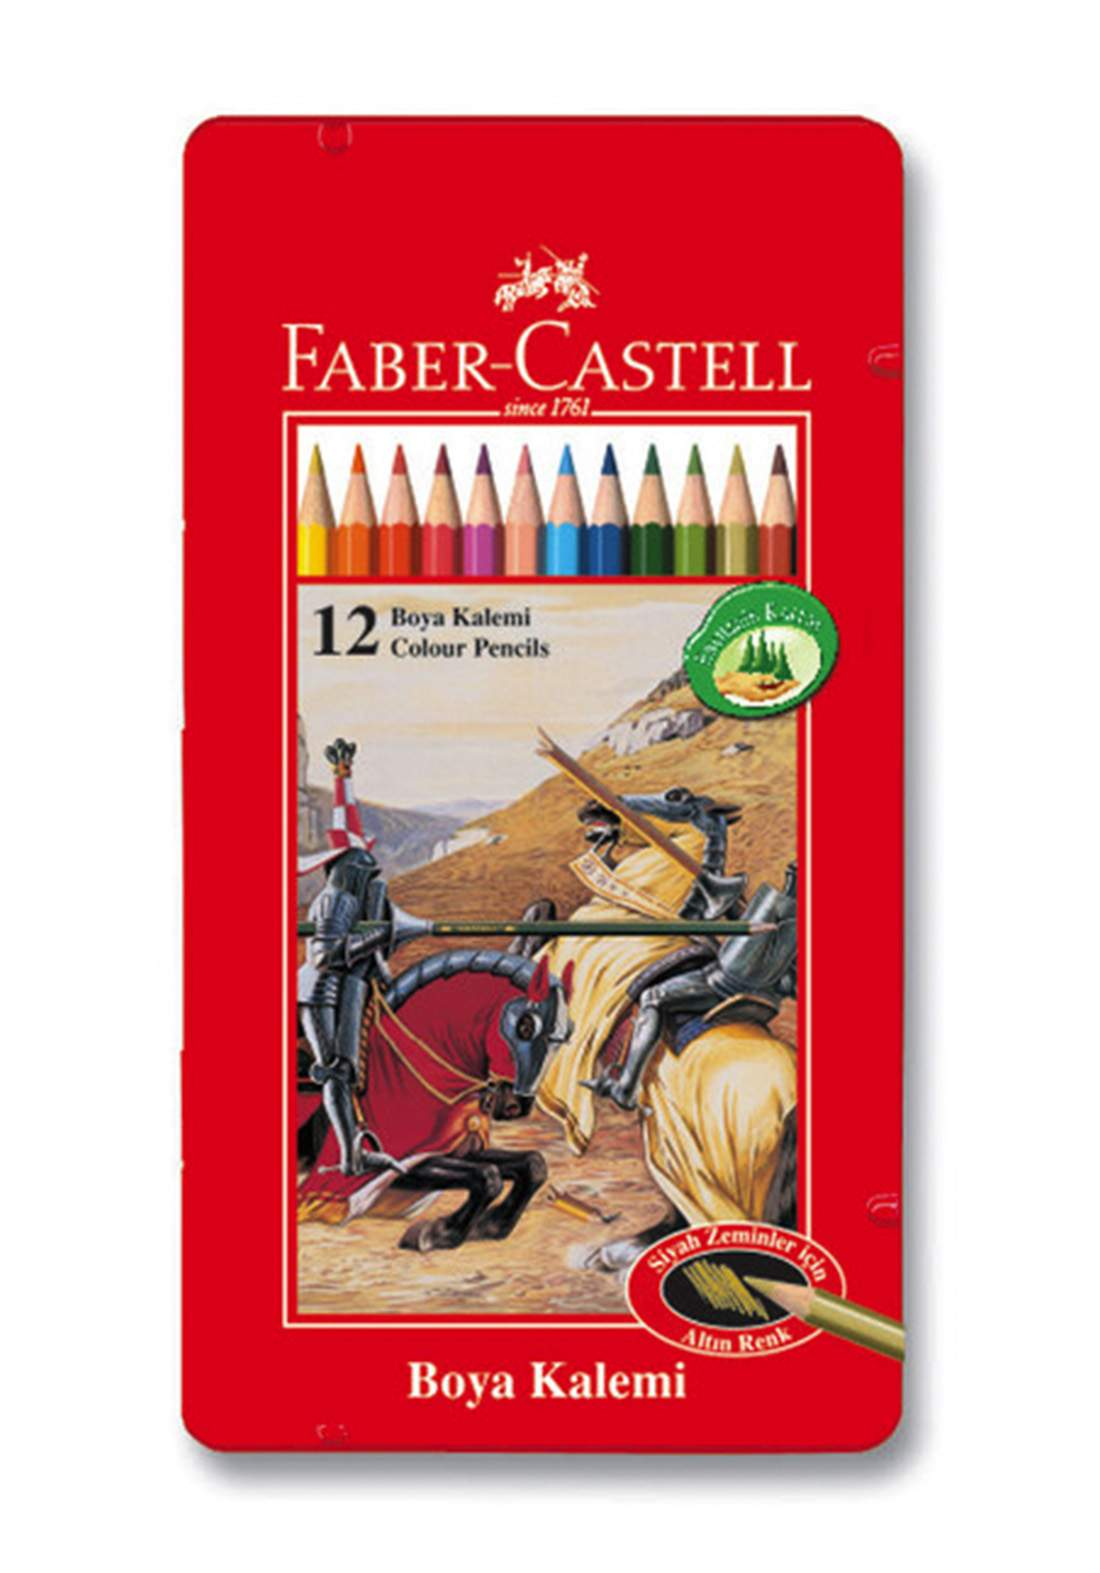 Faber Castell 12 Colores Especiales  اقلام تلوين خشبية 12 لون